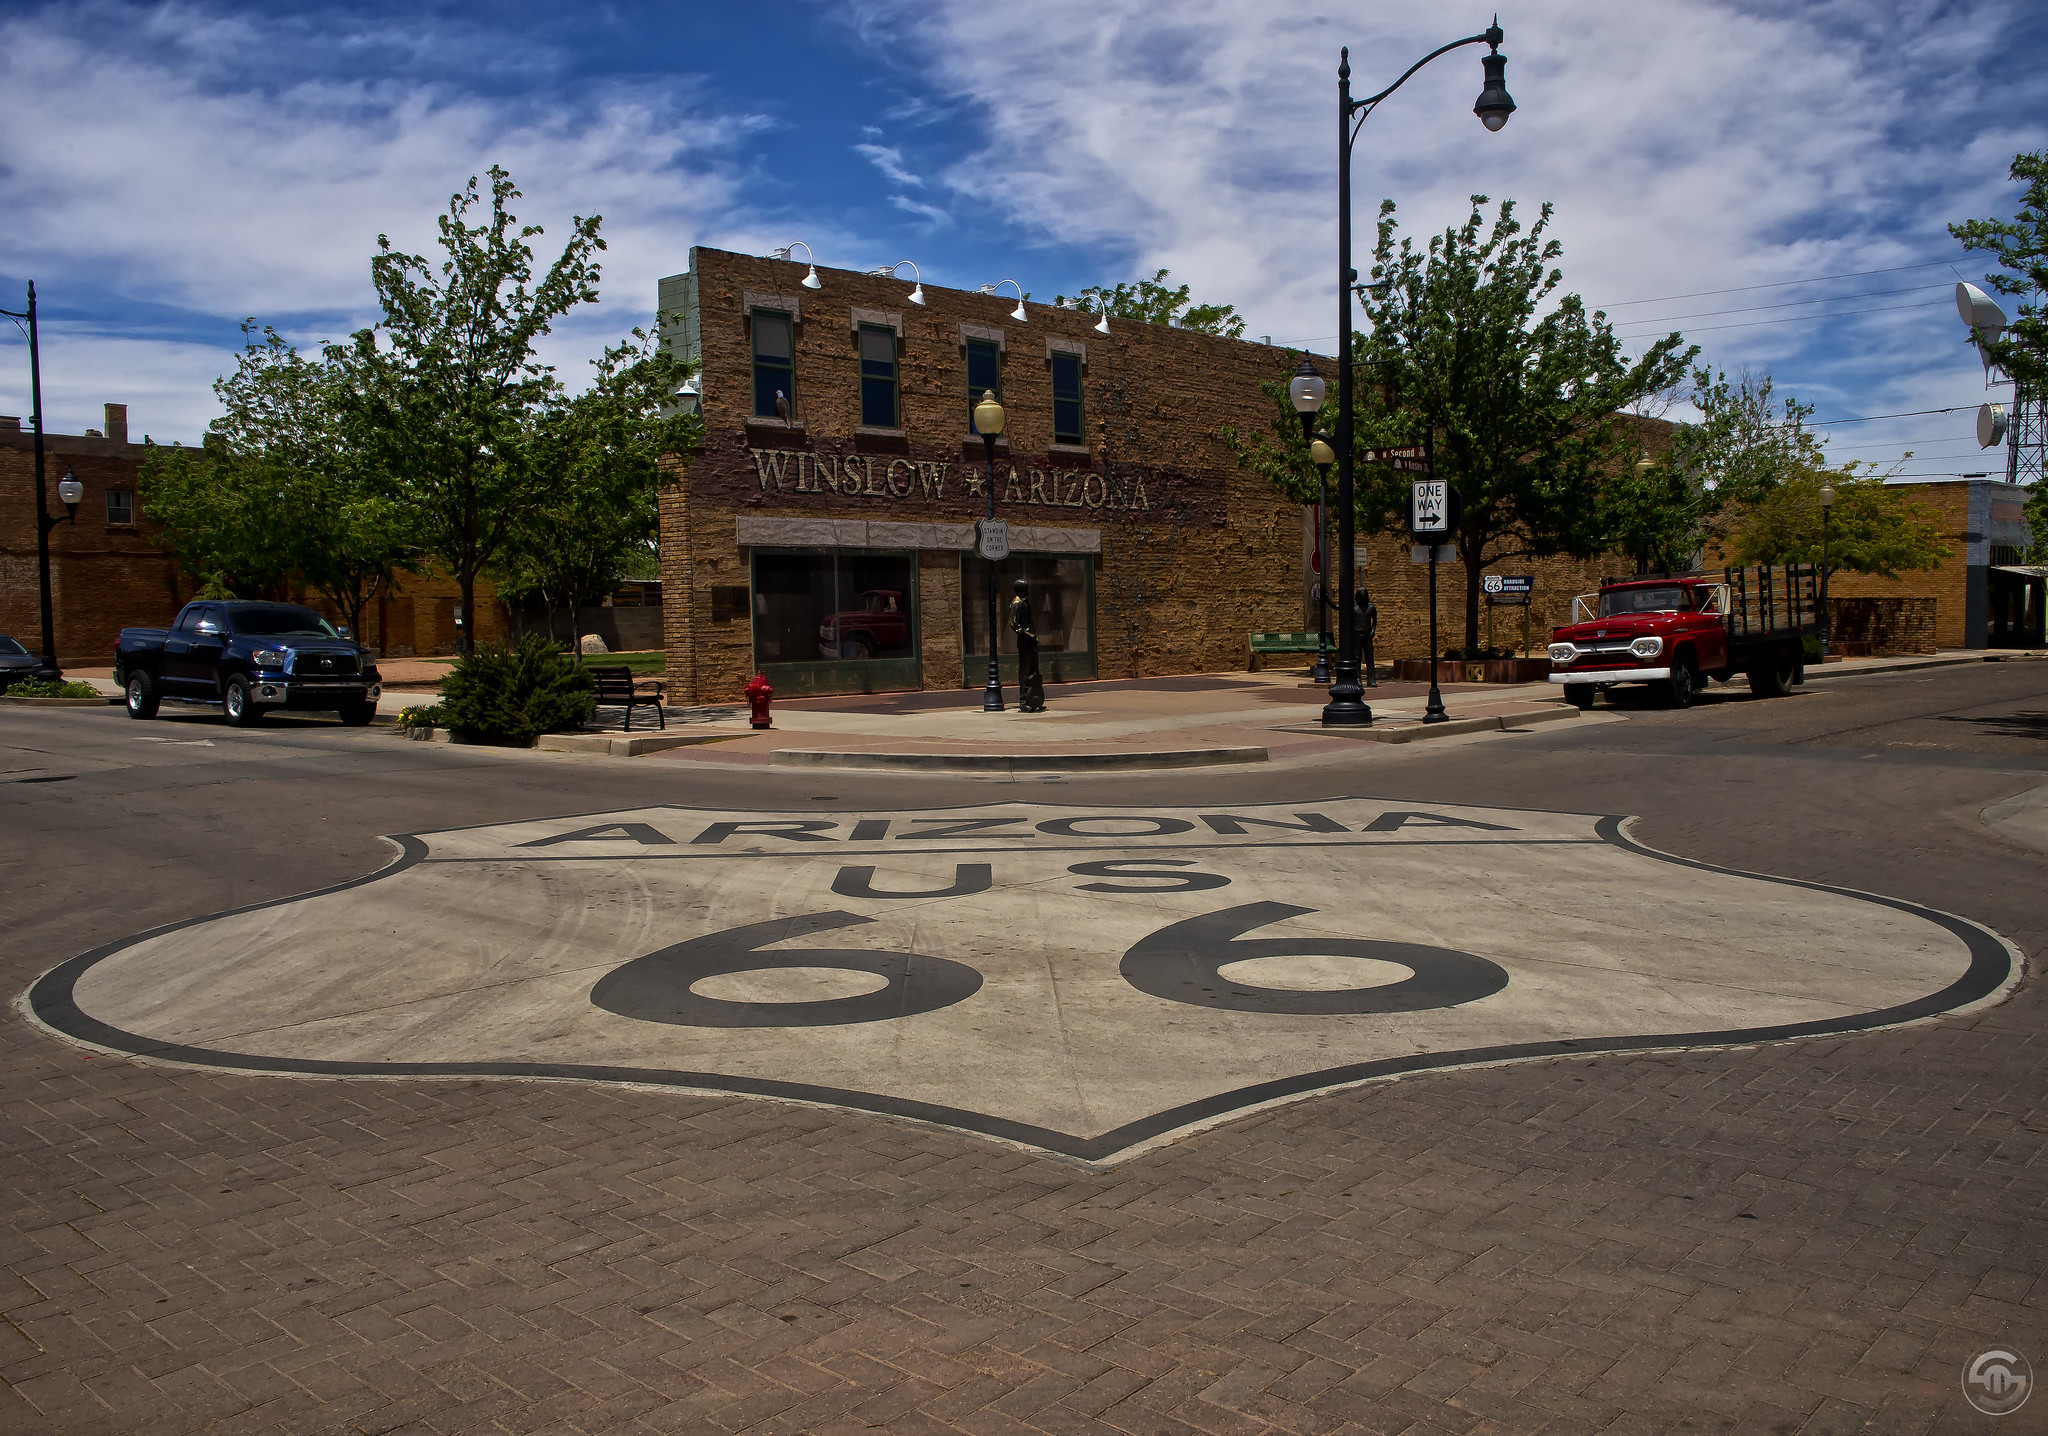 The famous corner in Winslow, Arizona mentioned in the Eagle's song.